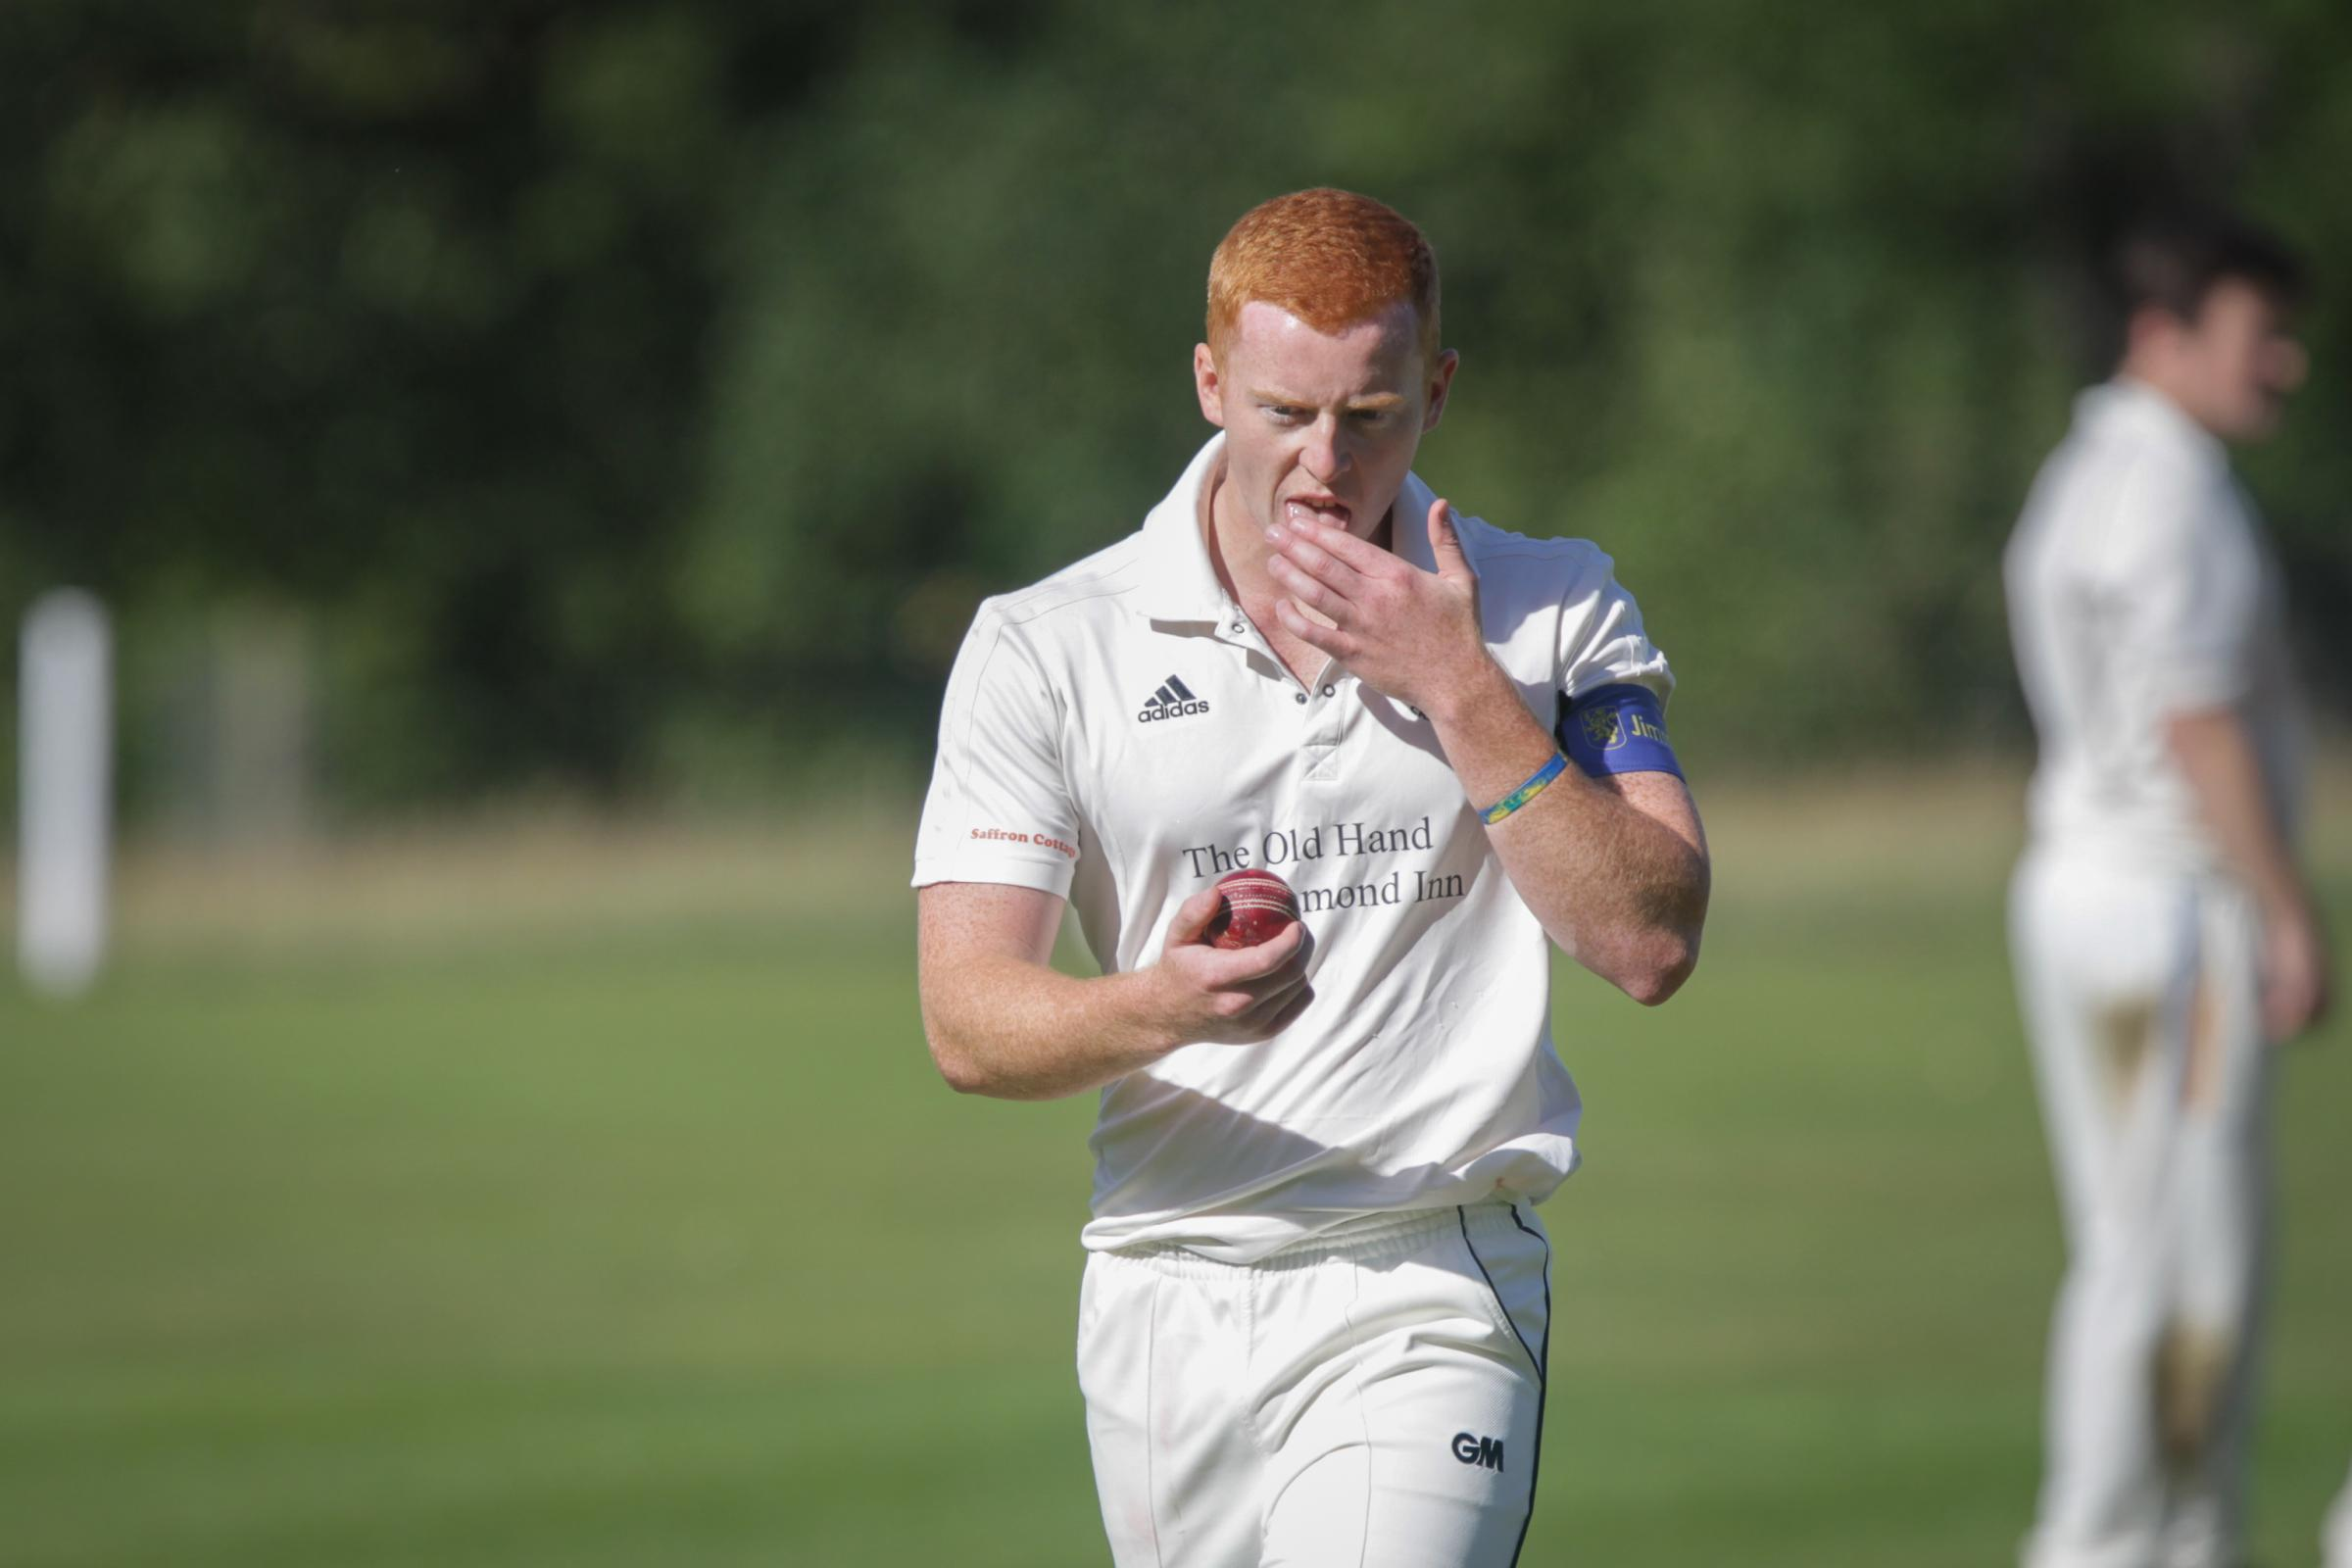 Alberbury's Sam Morris, who took 3/20 during the Henshalls Shropshire League Cricket match between Montgomery and Alberbury at Lymore on Saturday, August 5, 2017...Pic: Mike Sheridan/County Times.MS631-2017.